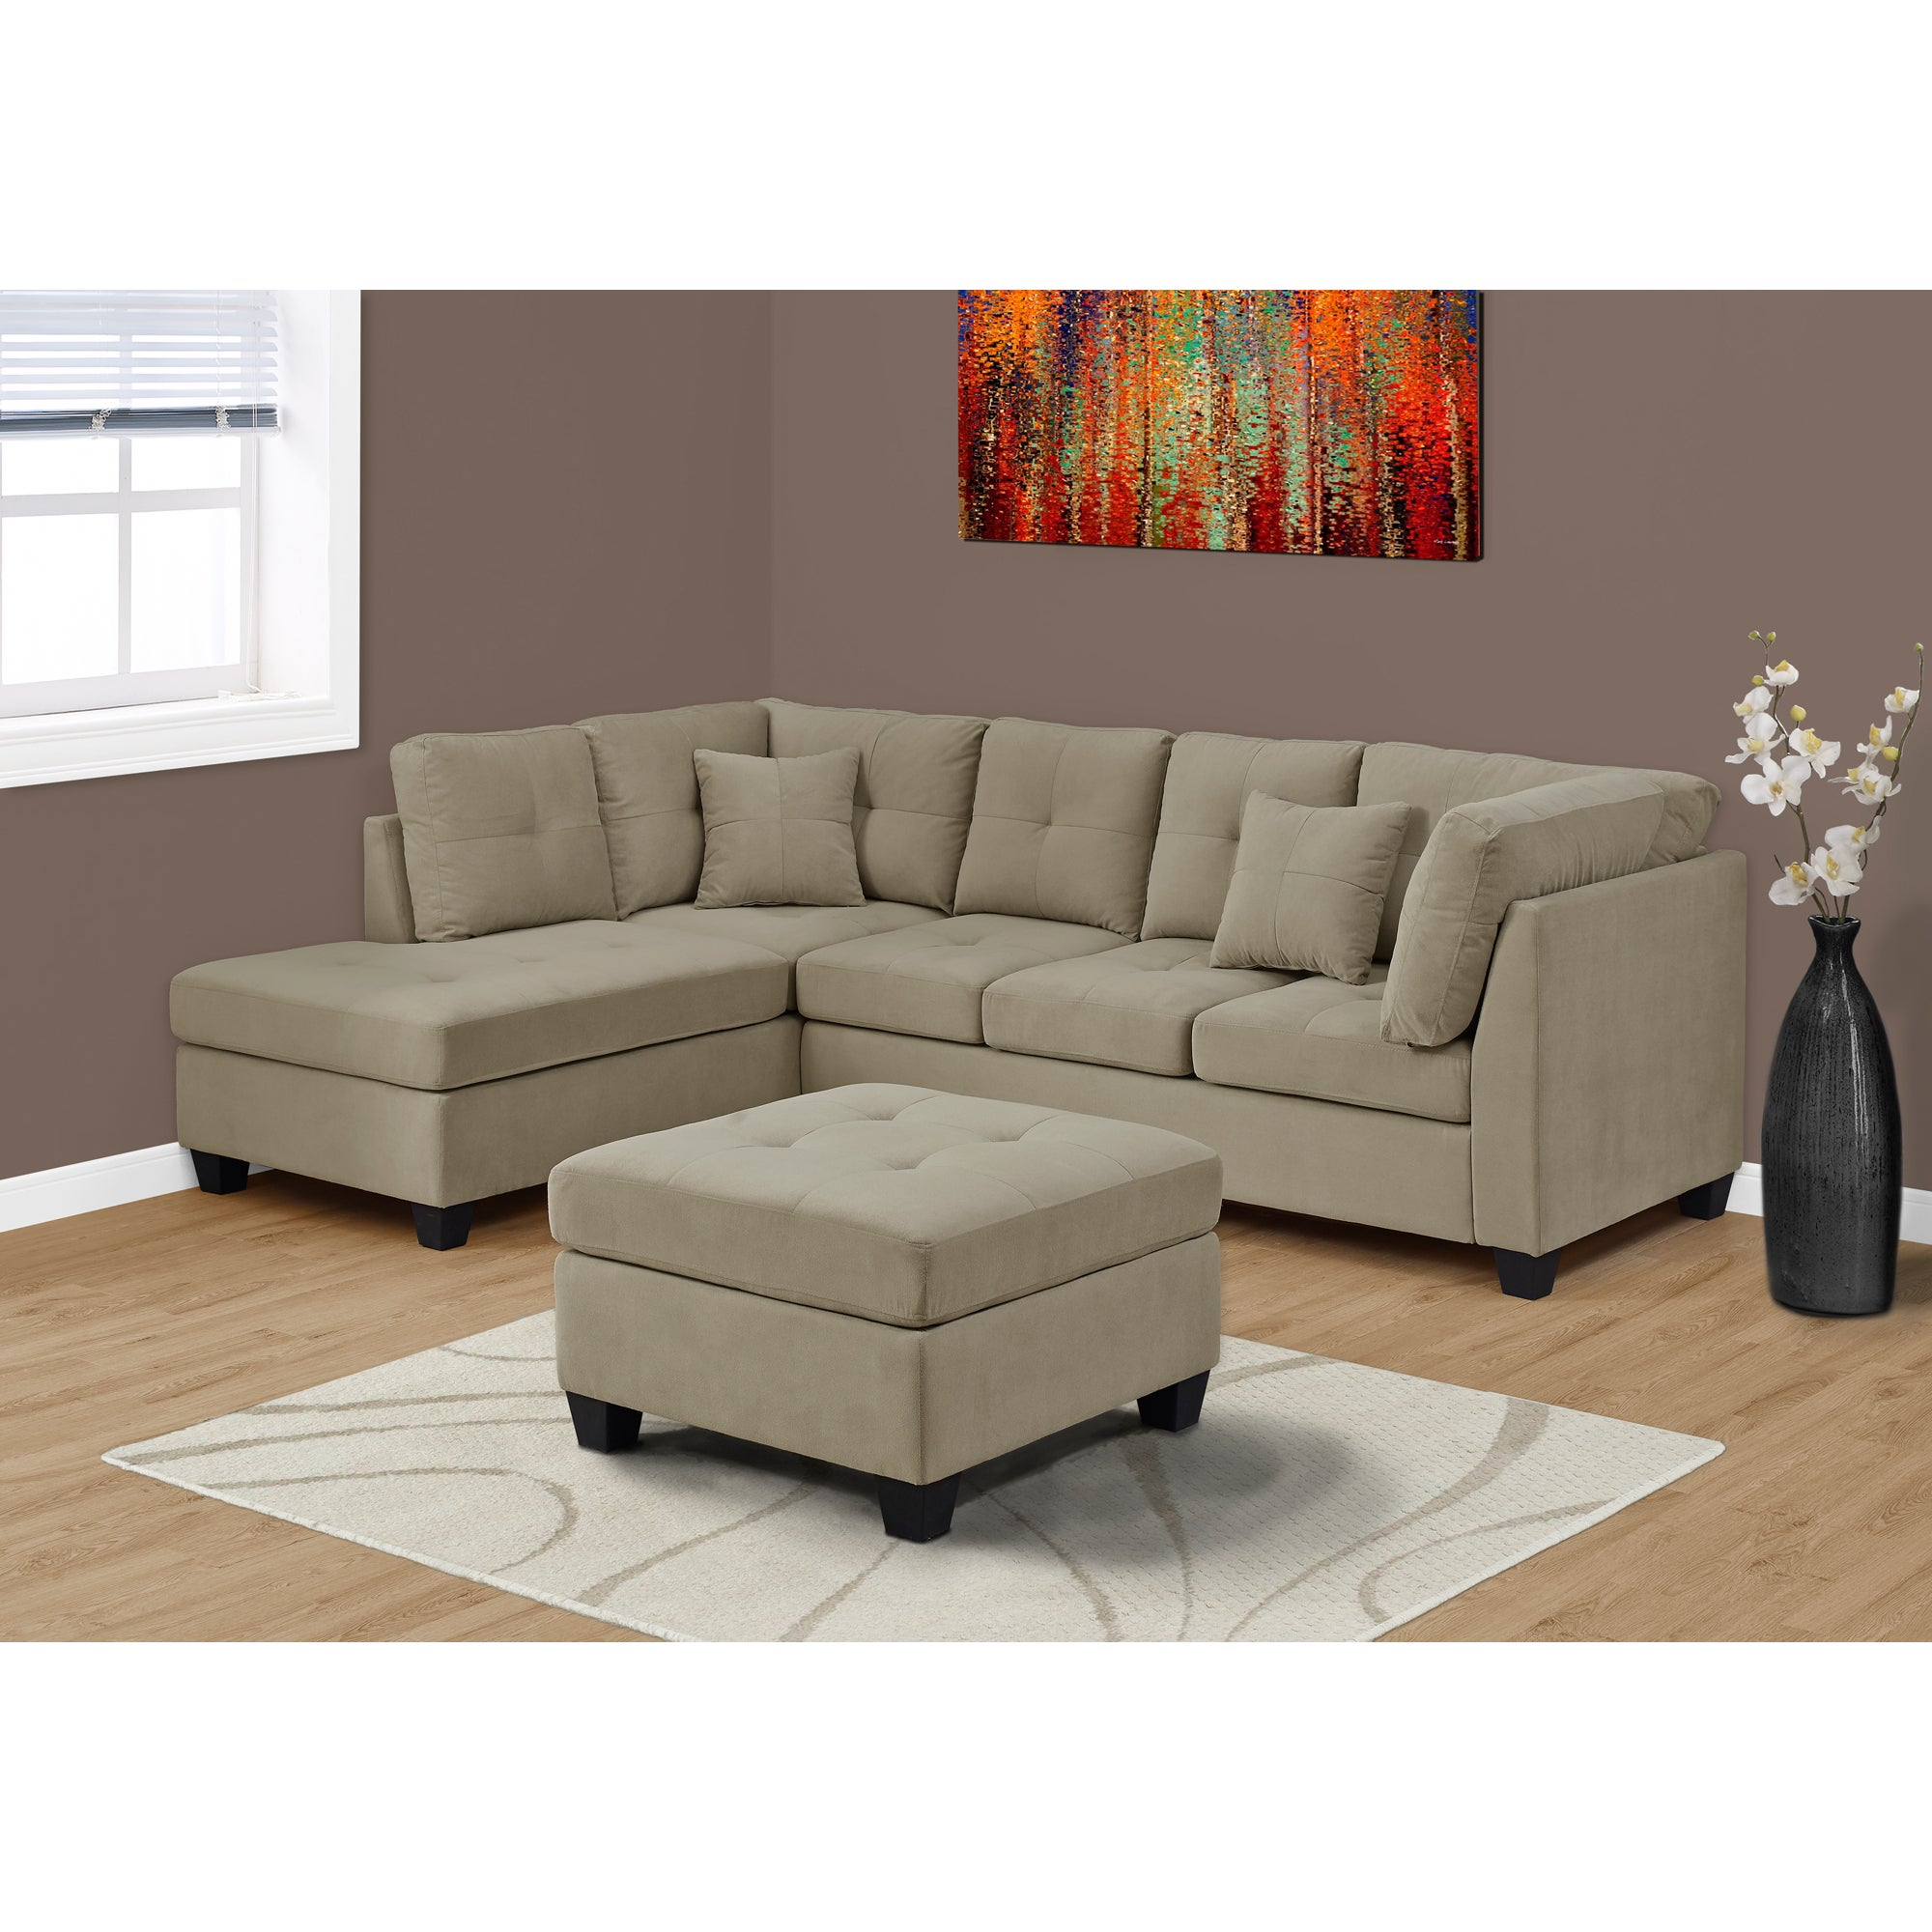 Shop taupe velvet sofa sectional free shipping today overstock com 13881255